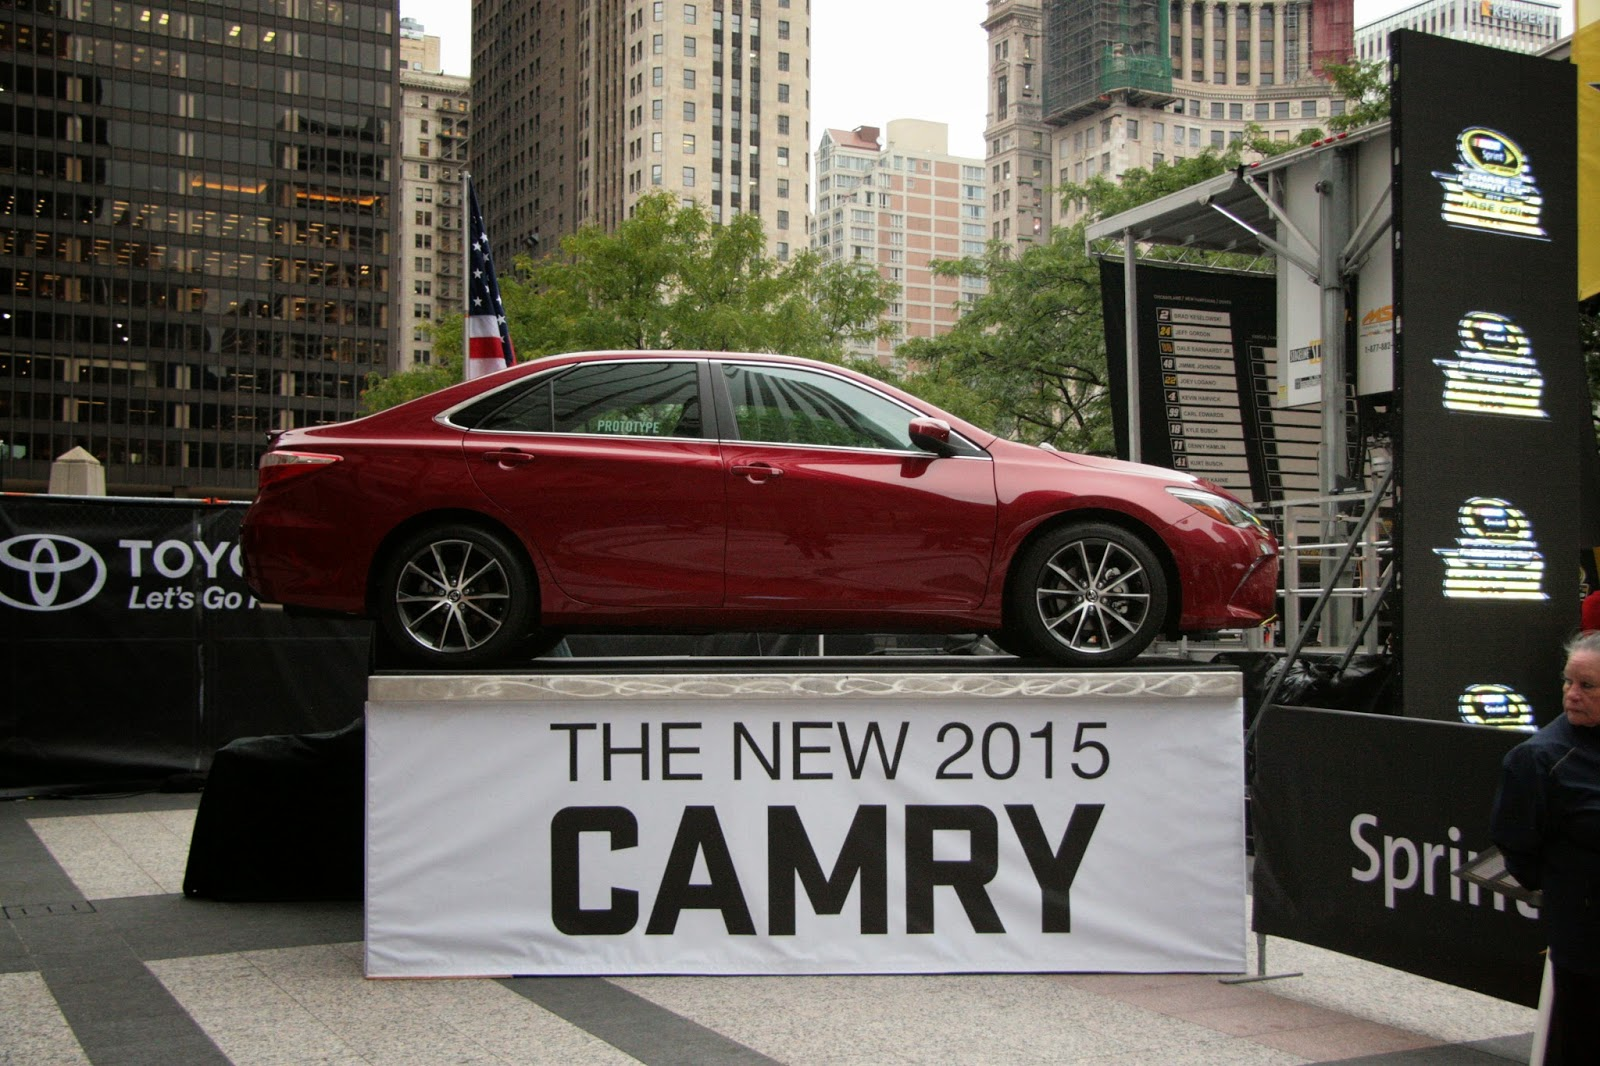 2015s Camry Model. Toyota, Let's Go Places